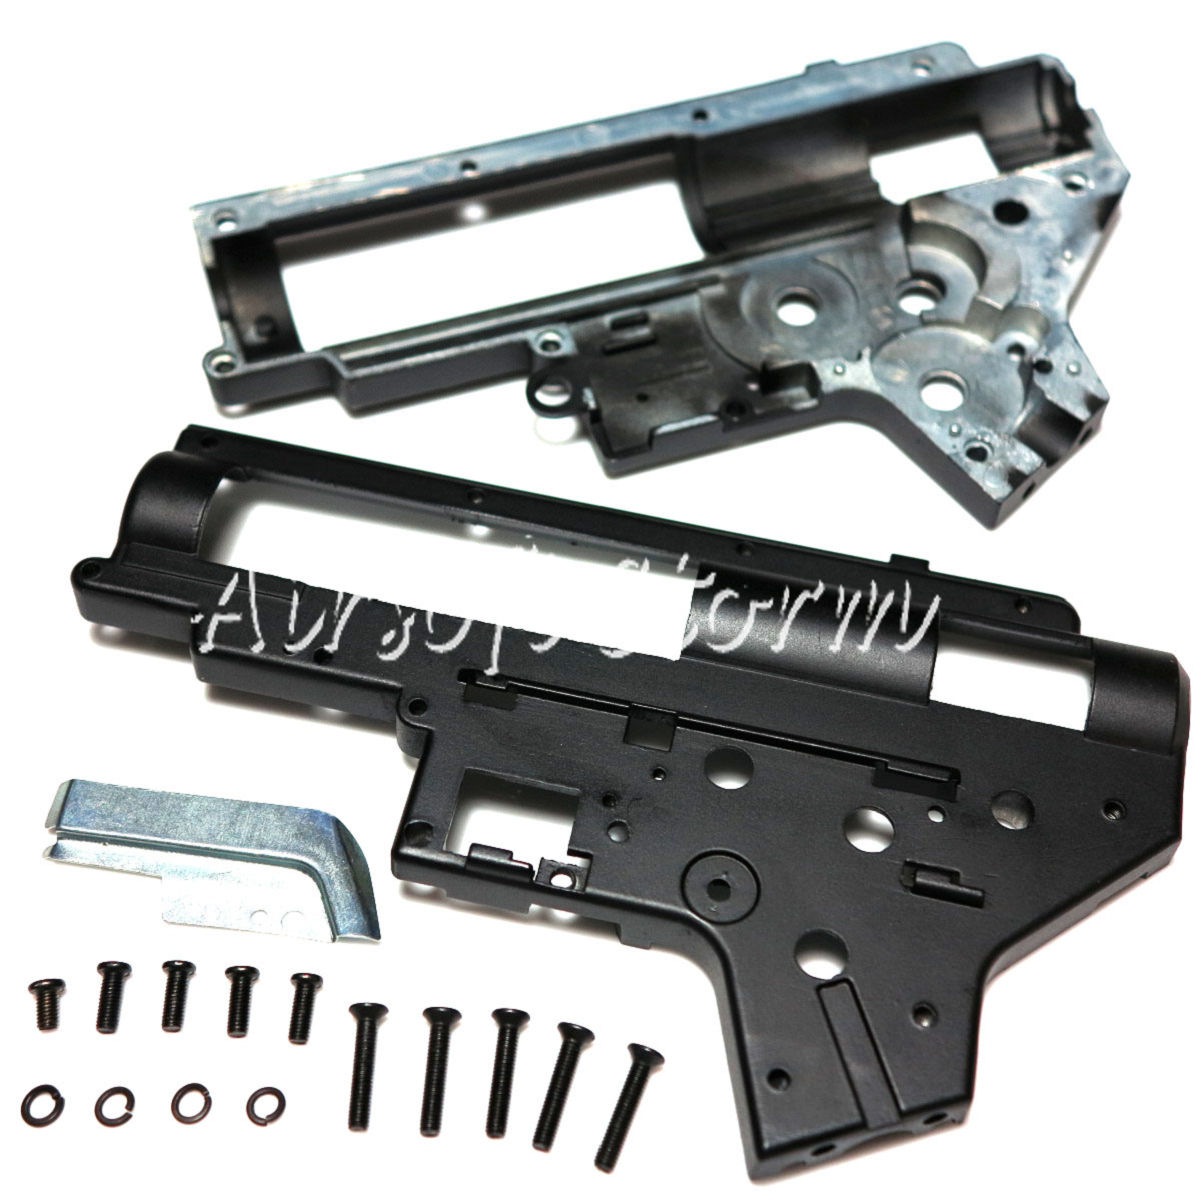 Shooting Gear D-Boys 7mm Bearing AEG M4 Reinforced Gearbox Shell Ver.2 Black